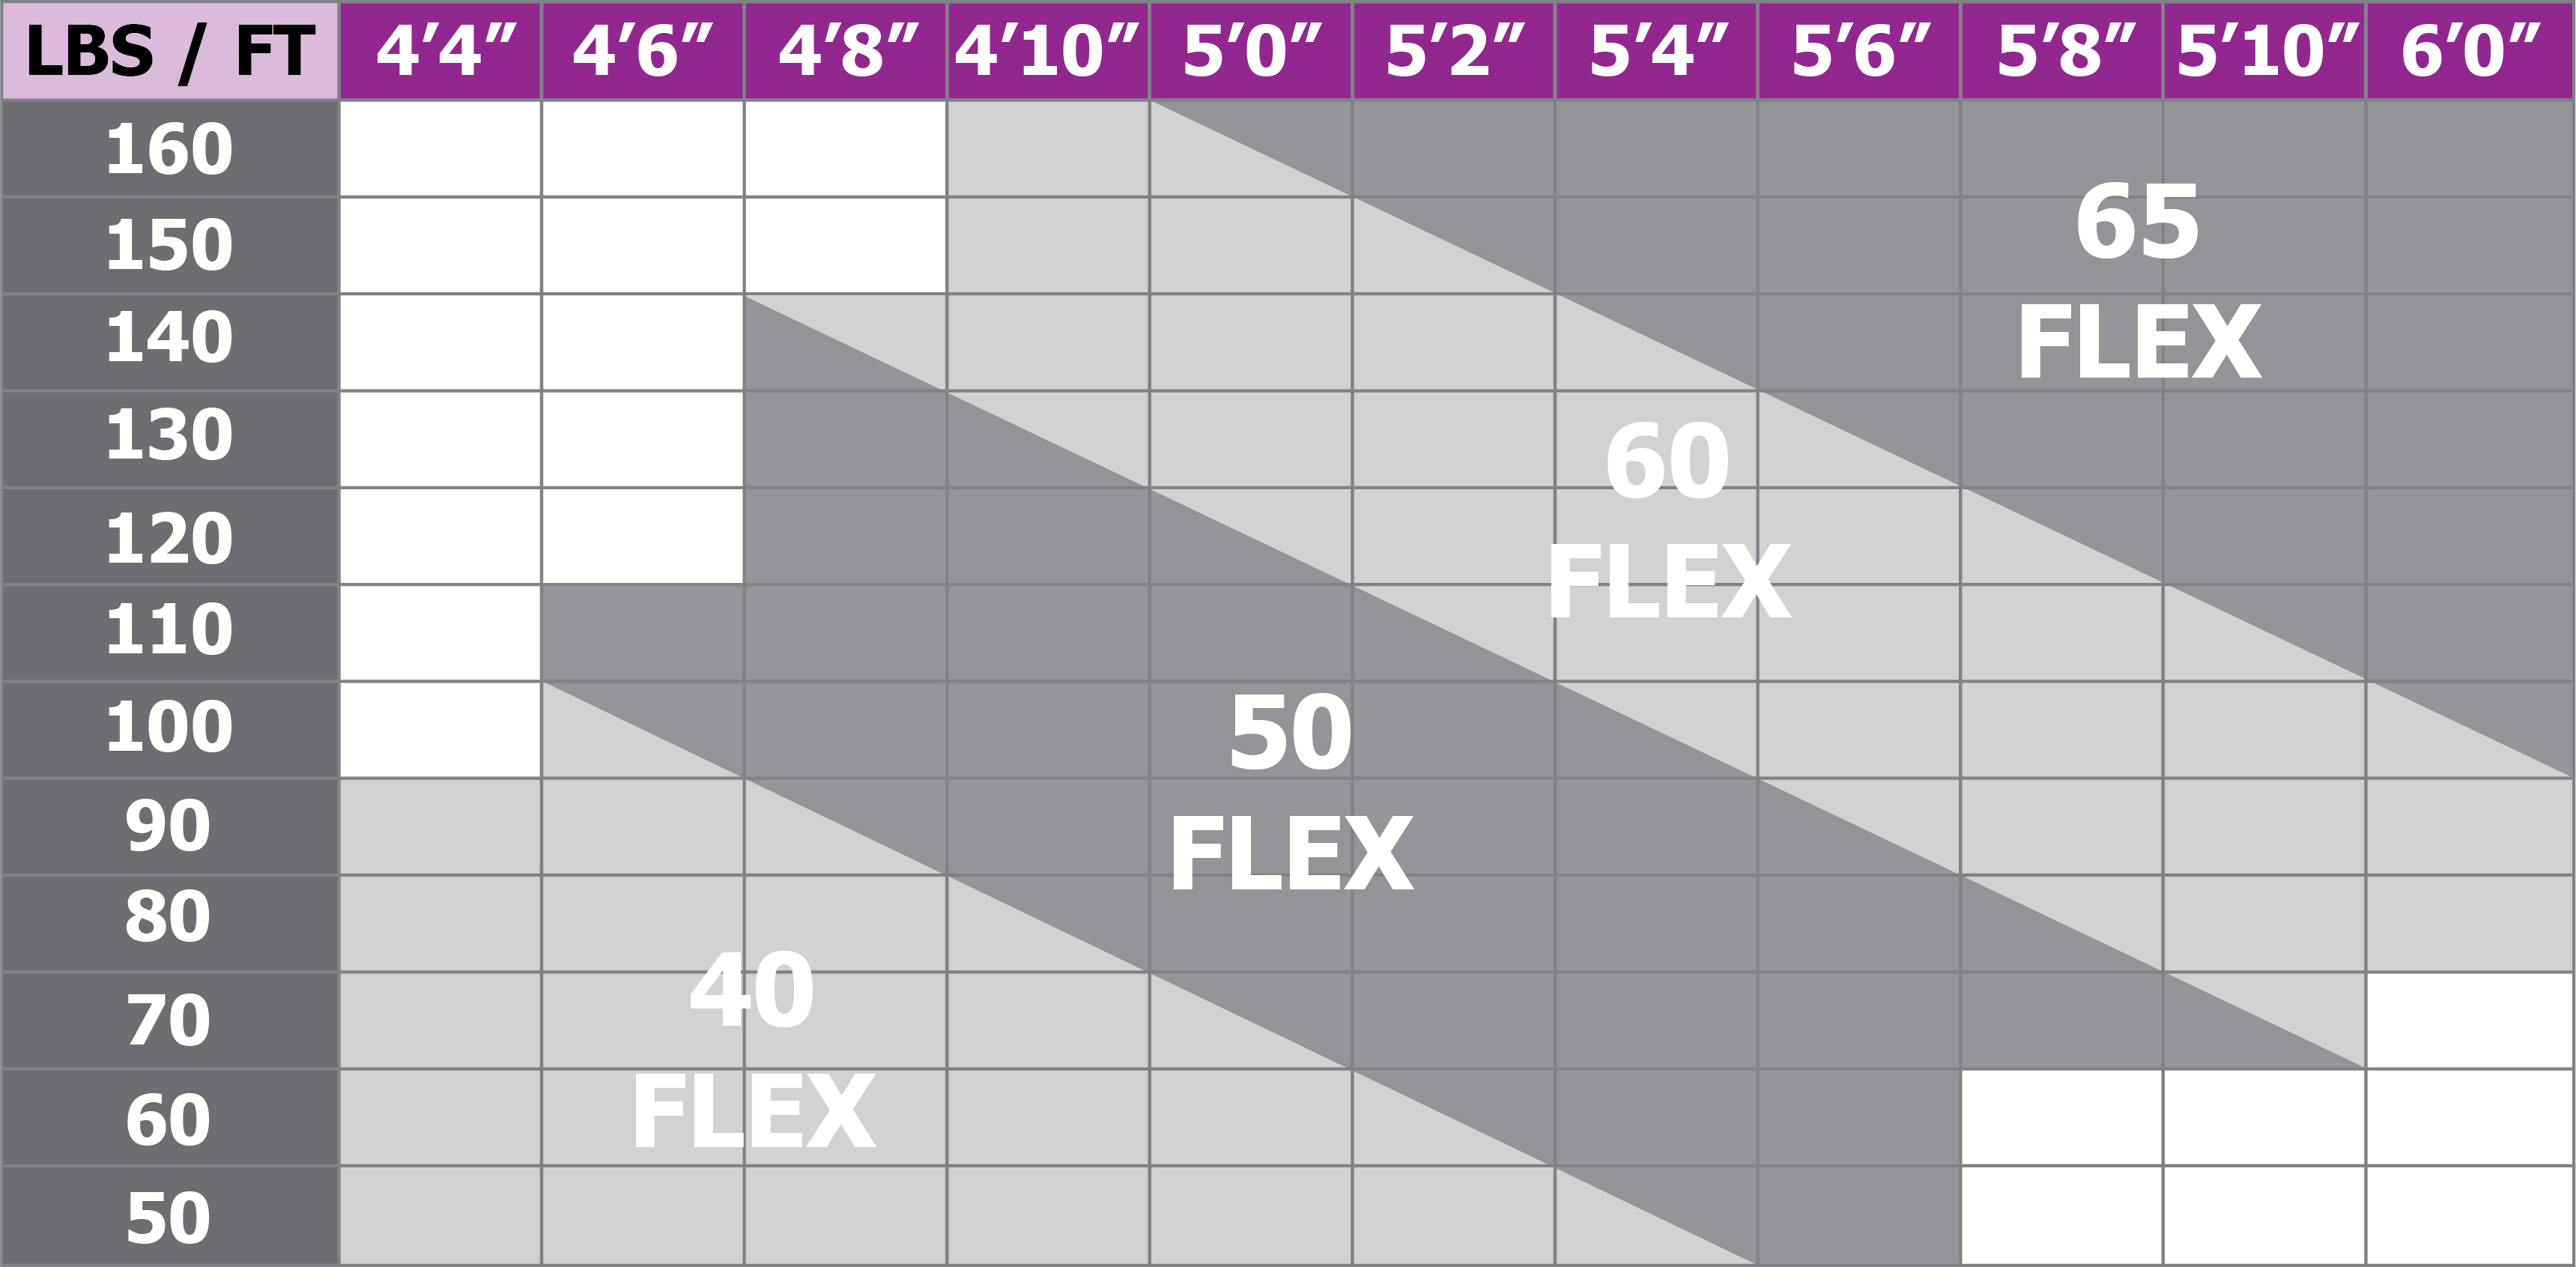 tribe-flex-chart-copy.jpg